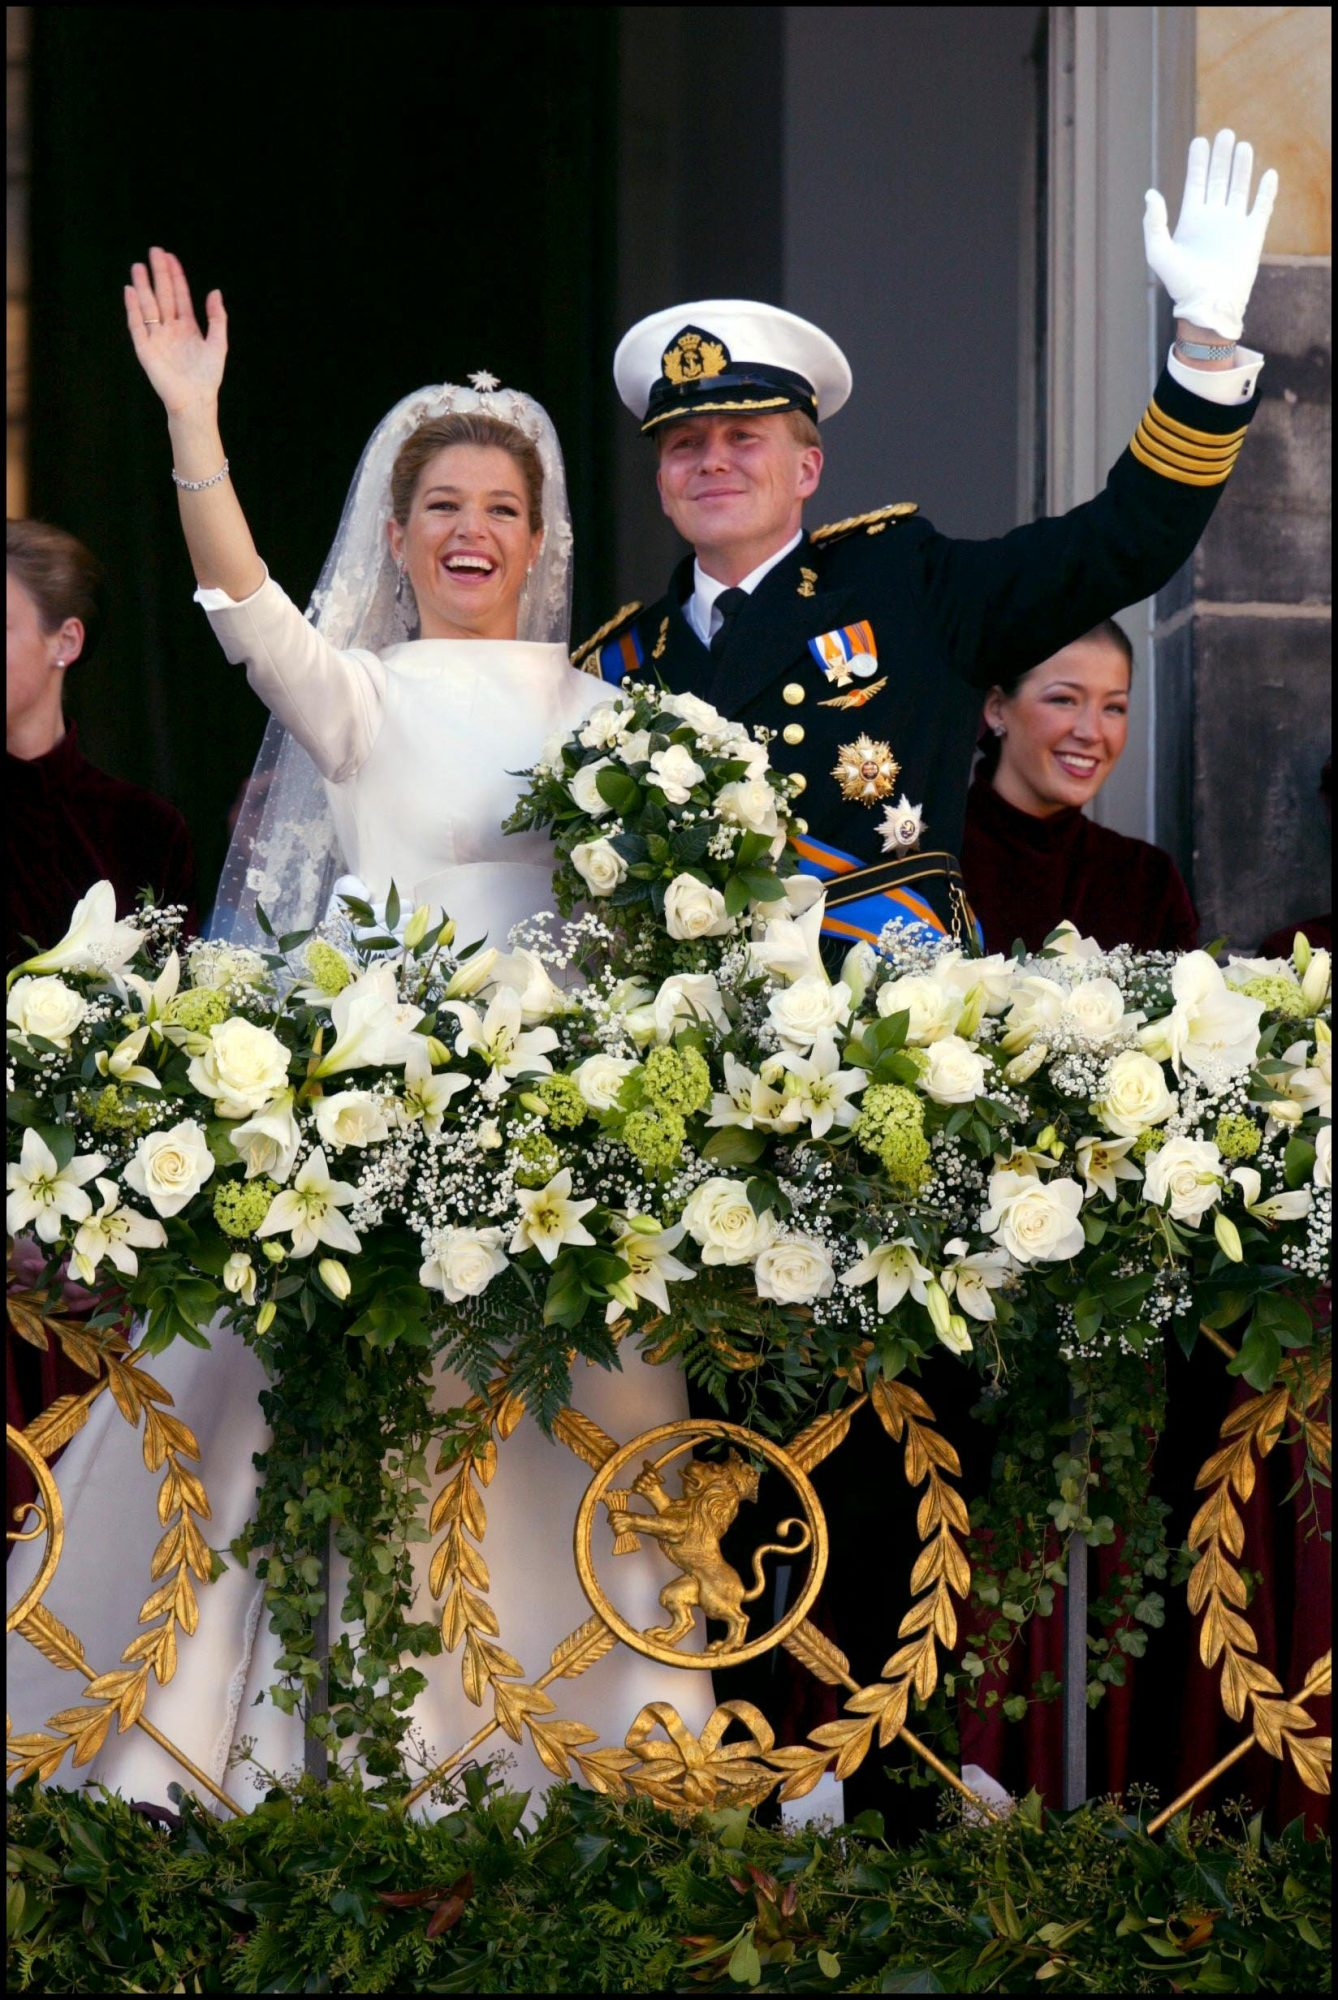 Royal Wedding of the Prince Willem-Alexander with Maxima Zorreguieta In Amsterdam, Netherlands On February 02, 2002-